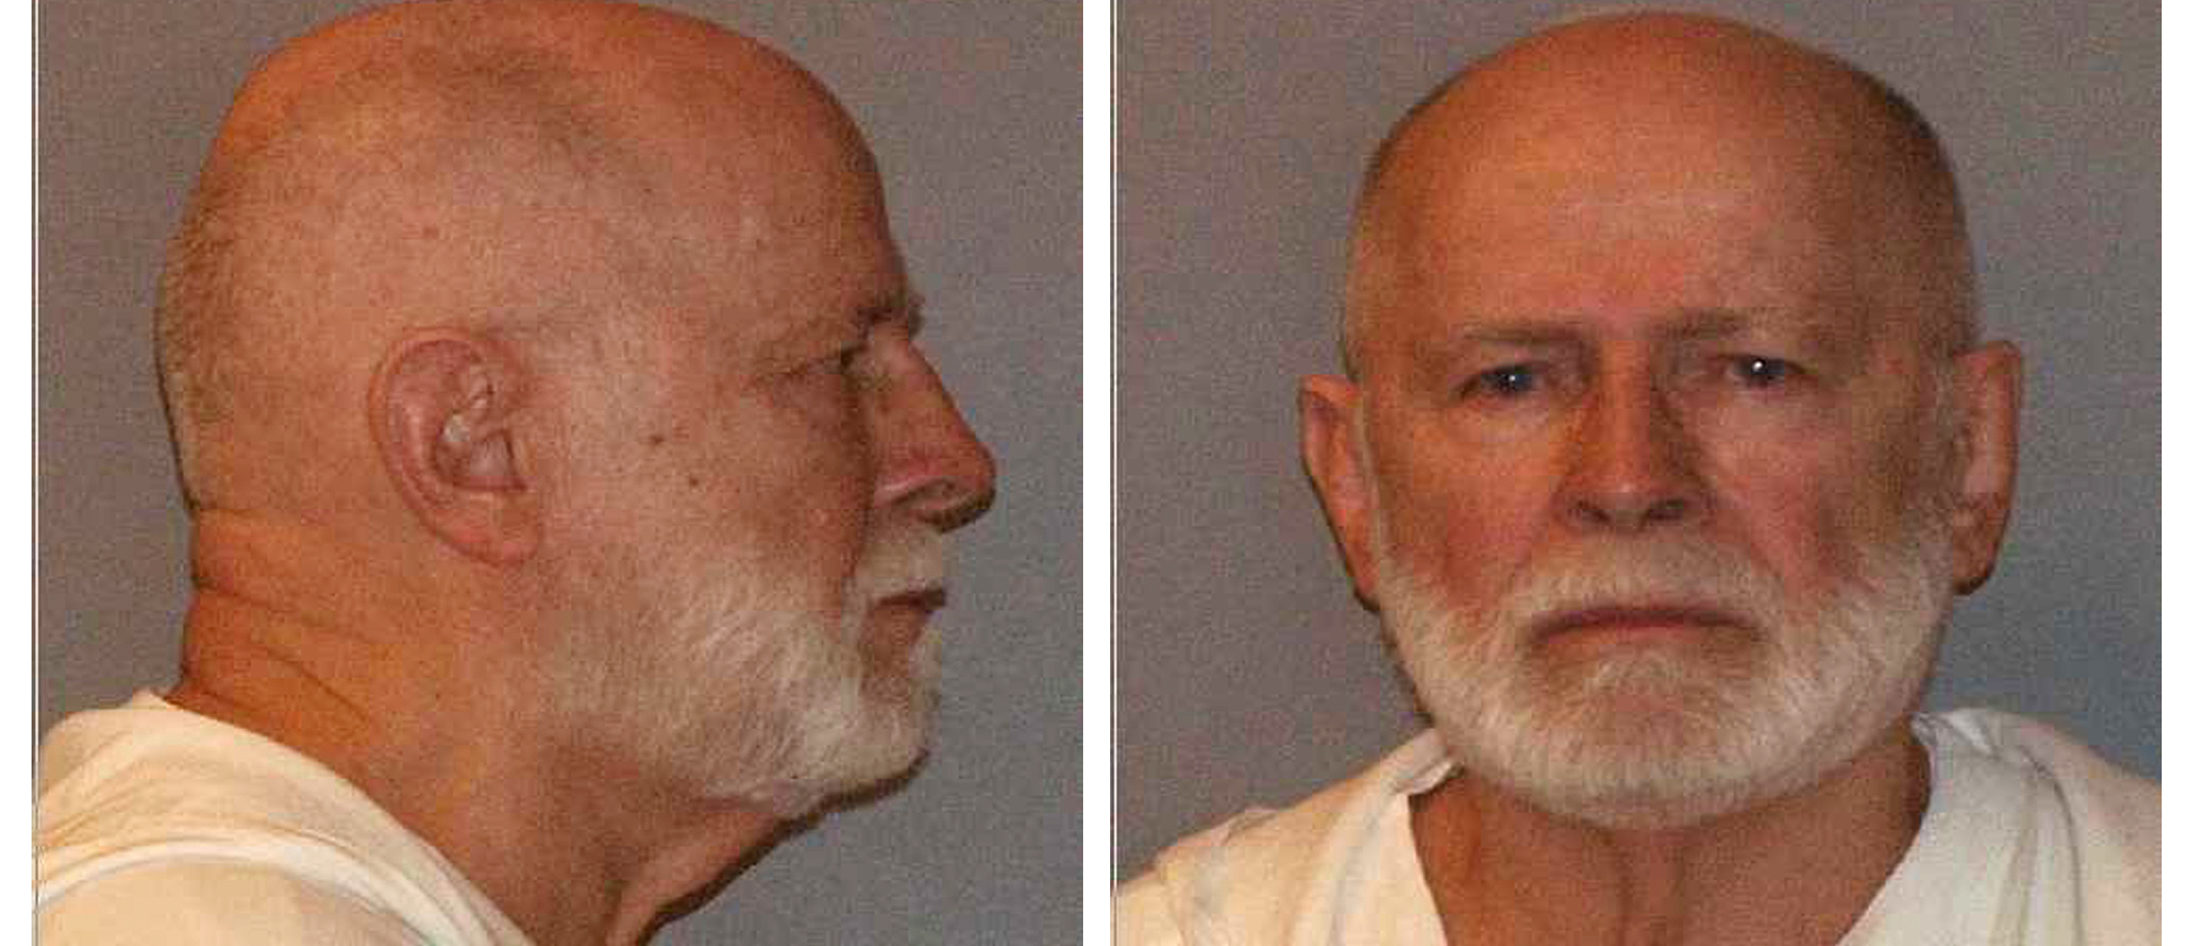 """Former mob boss and fugitive James """"Whitey"""" Bulger, who was arrested in Santa Monica, California on June 22, 2011 along with his longtime girlfriend Catherine Greig, is seen in a combination of booking mug photos released to Reuters on August 1, 2011. Bulger, currently on trial in Boston for murder and racketeering, has angrily cursed in open court, his own lawyer has described him as a mobster and one potential witness this week turned up dead on the side of a road. As prosecutors prepare to wrap up their case early next week and hand it over to the defense, the biggest question on observers' minds is whether the 83-year-old defendant will break with convention once more and take to the witness stand. REUTERS/U.S. Marshals Service/U.S. Department of Justice/Handout"""